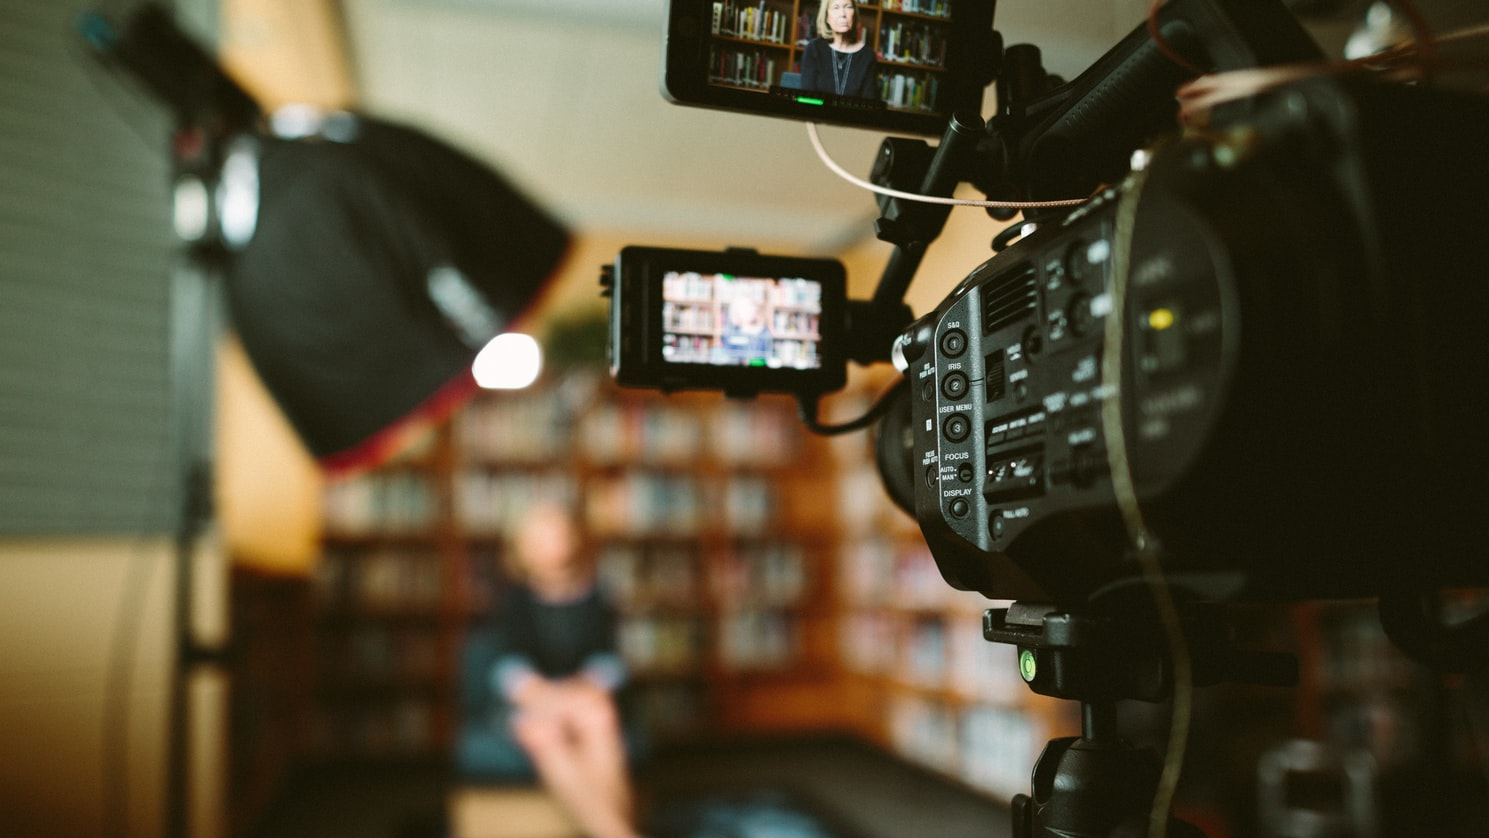 How to Use Video Marketing: SEO & Marketing Tips For Small Business Owners  - Digital Content Kings - SEO Creative Marketing Agency Colombo, Sri Lanka